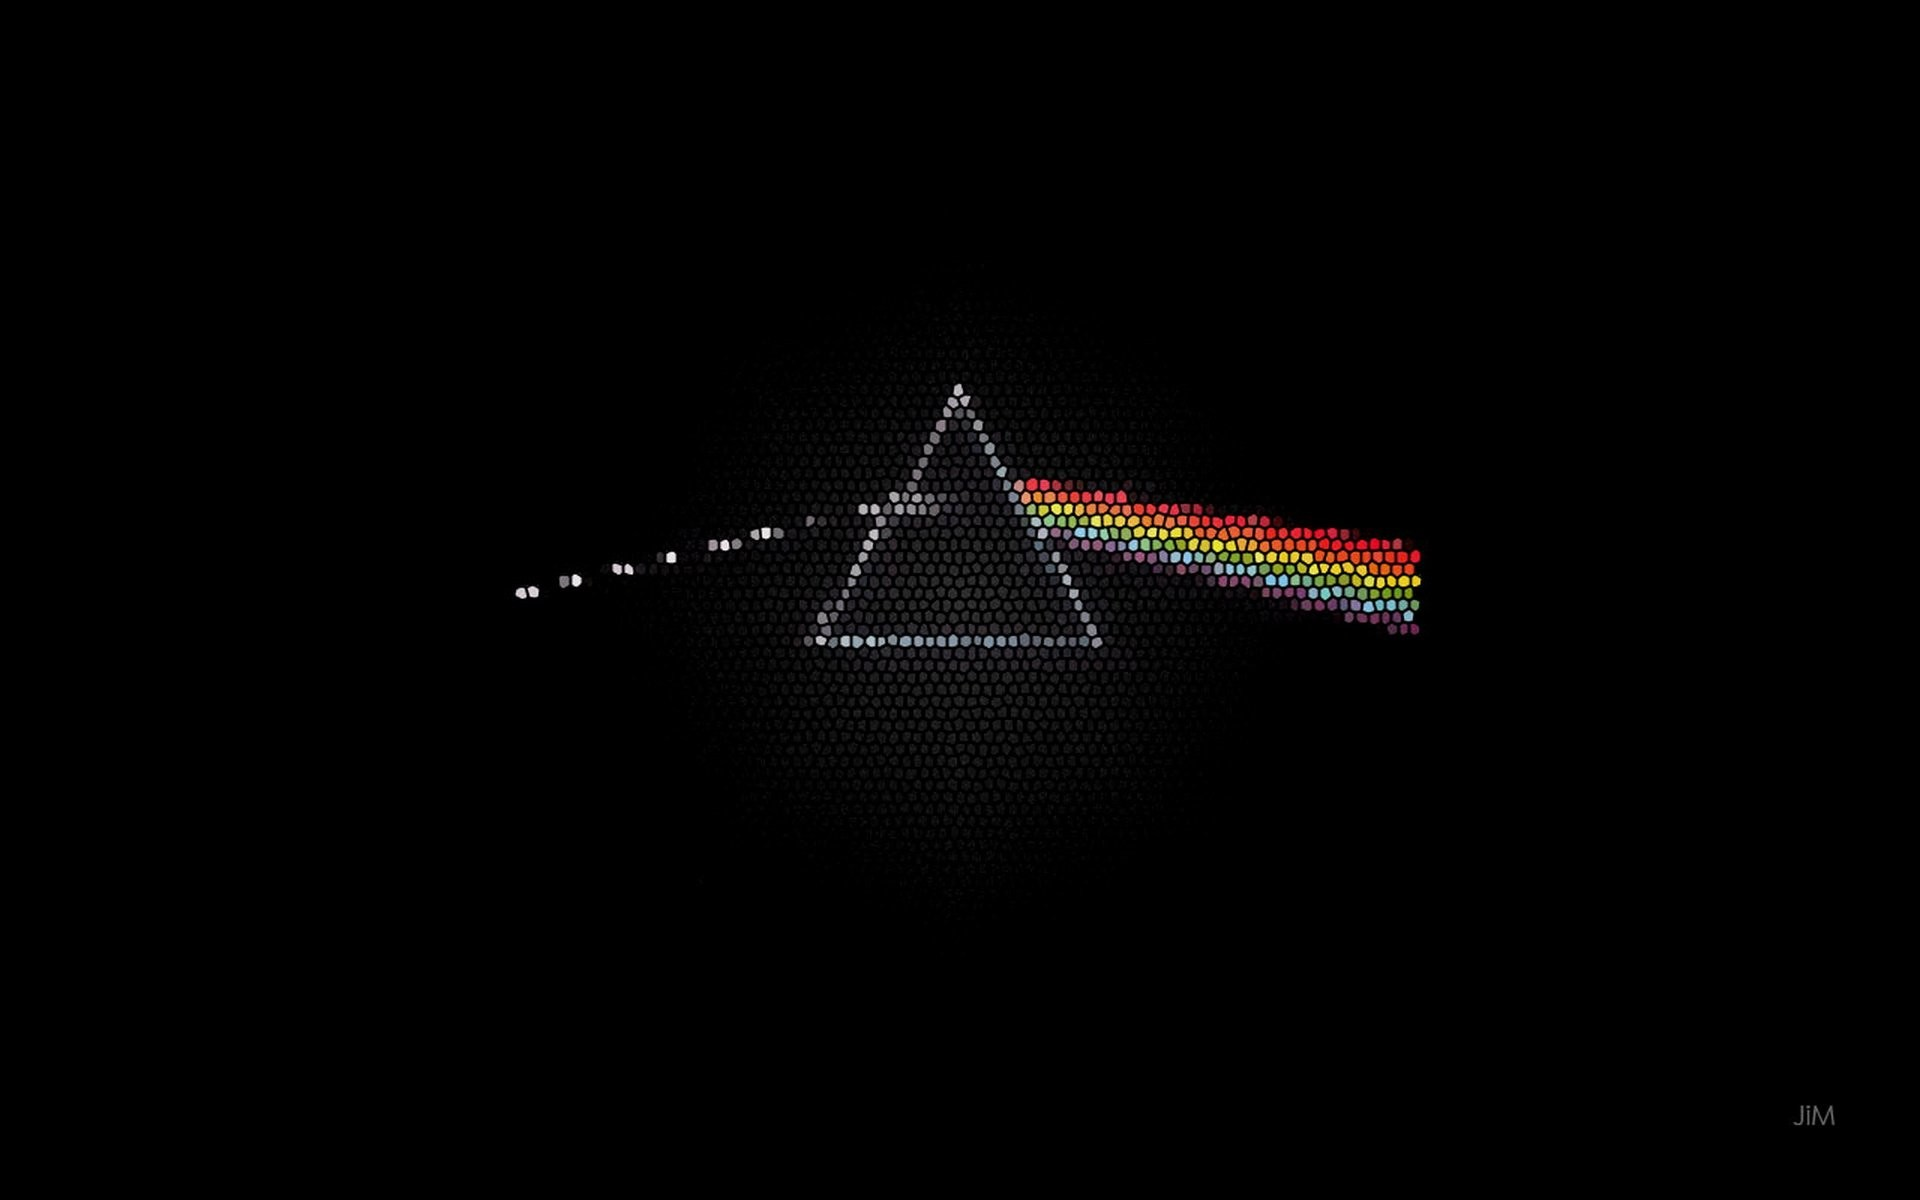 Pink Floyd Music Image3 Images Imagepages …